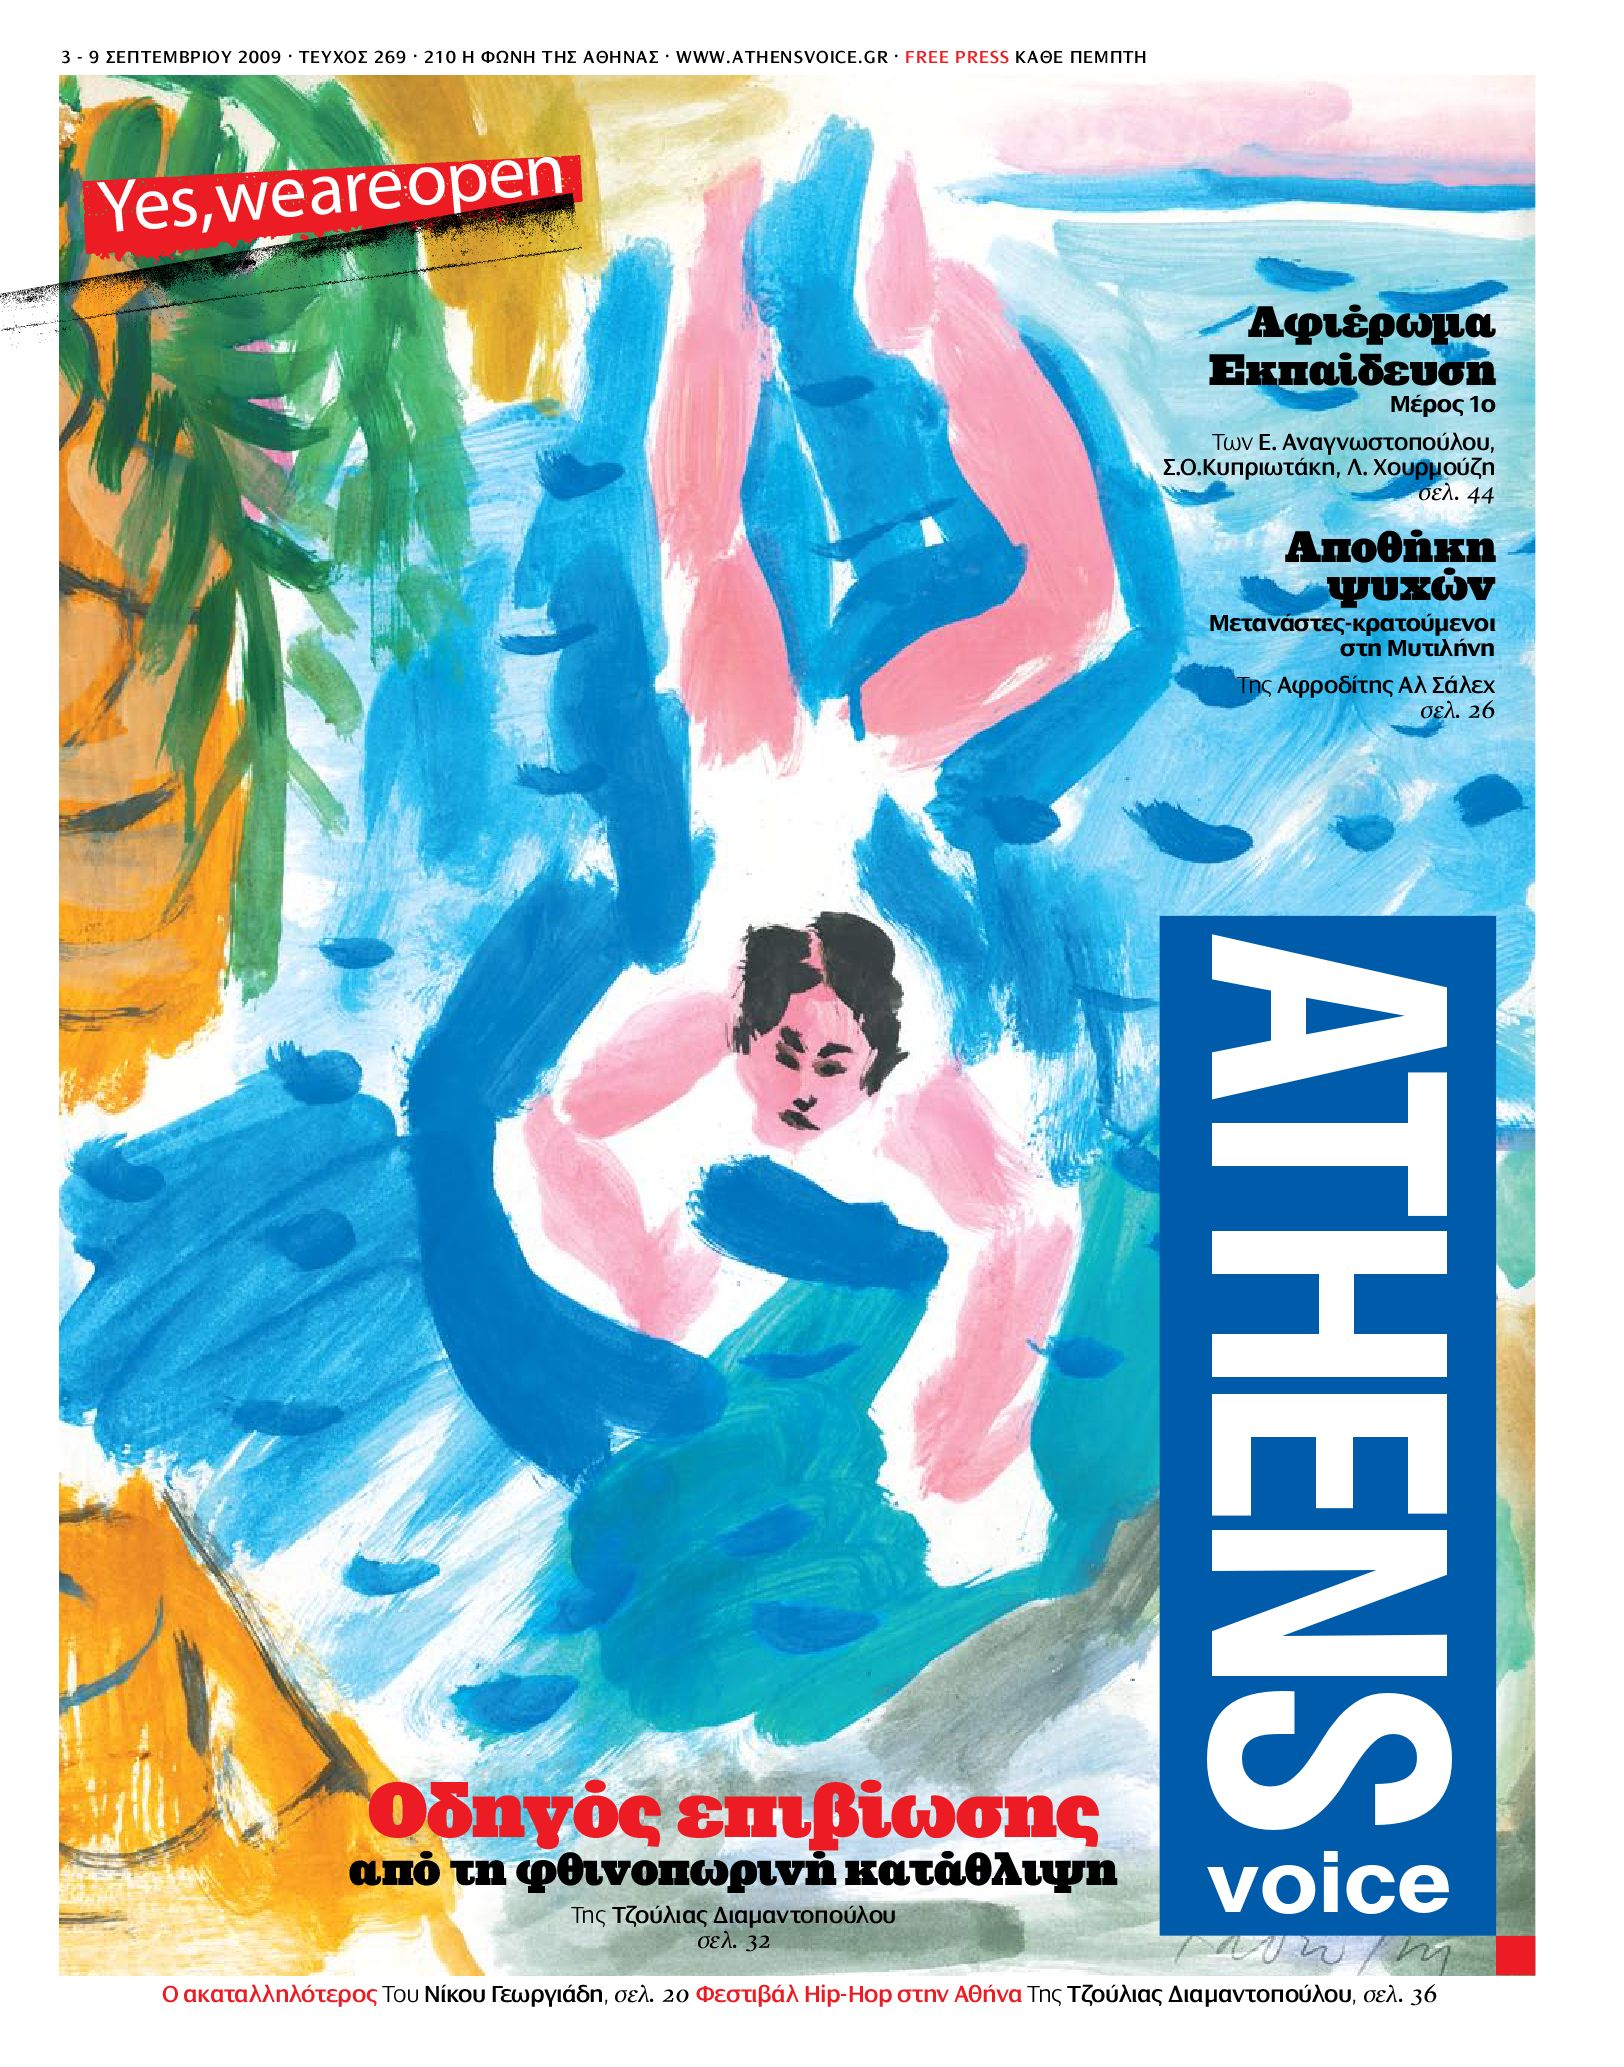 Athens Voice 269 by Athens Voice - issuu 801d0a9bda0